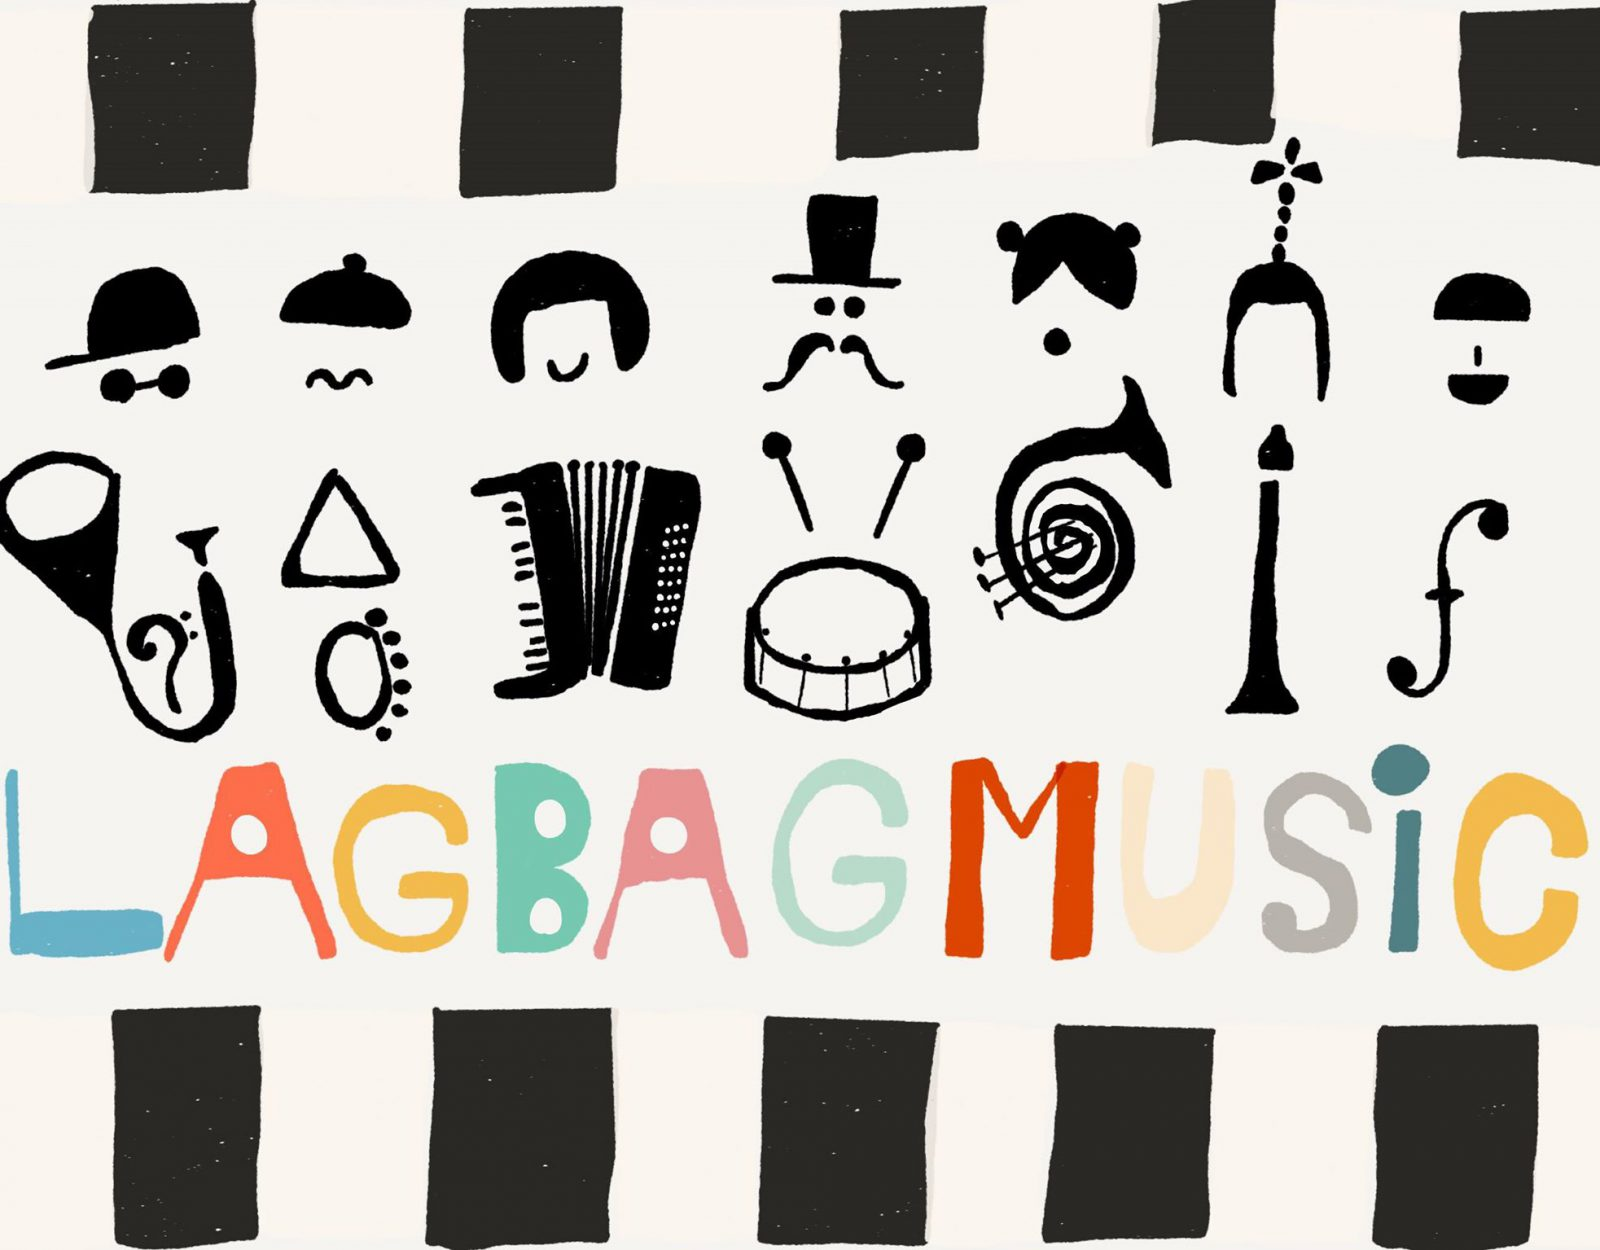 LAGBAG MUSIC BAND